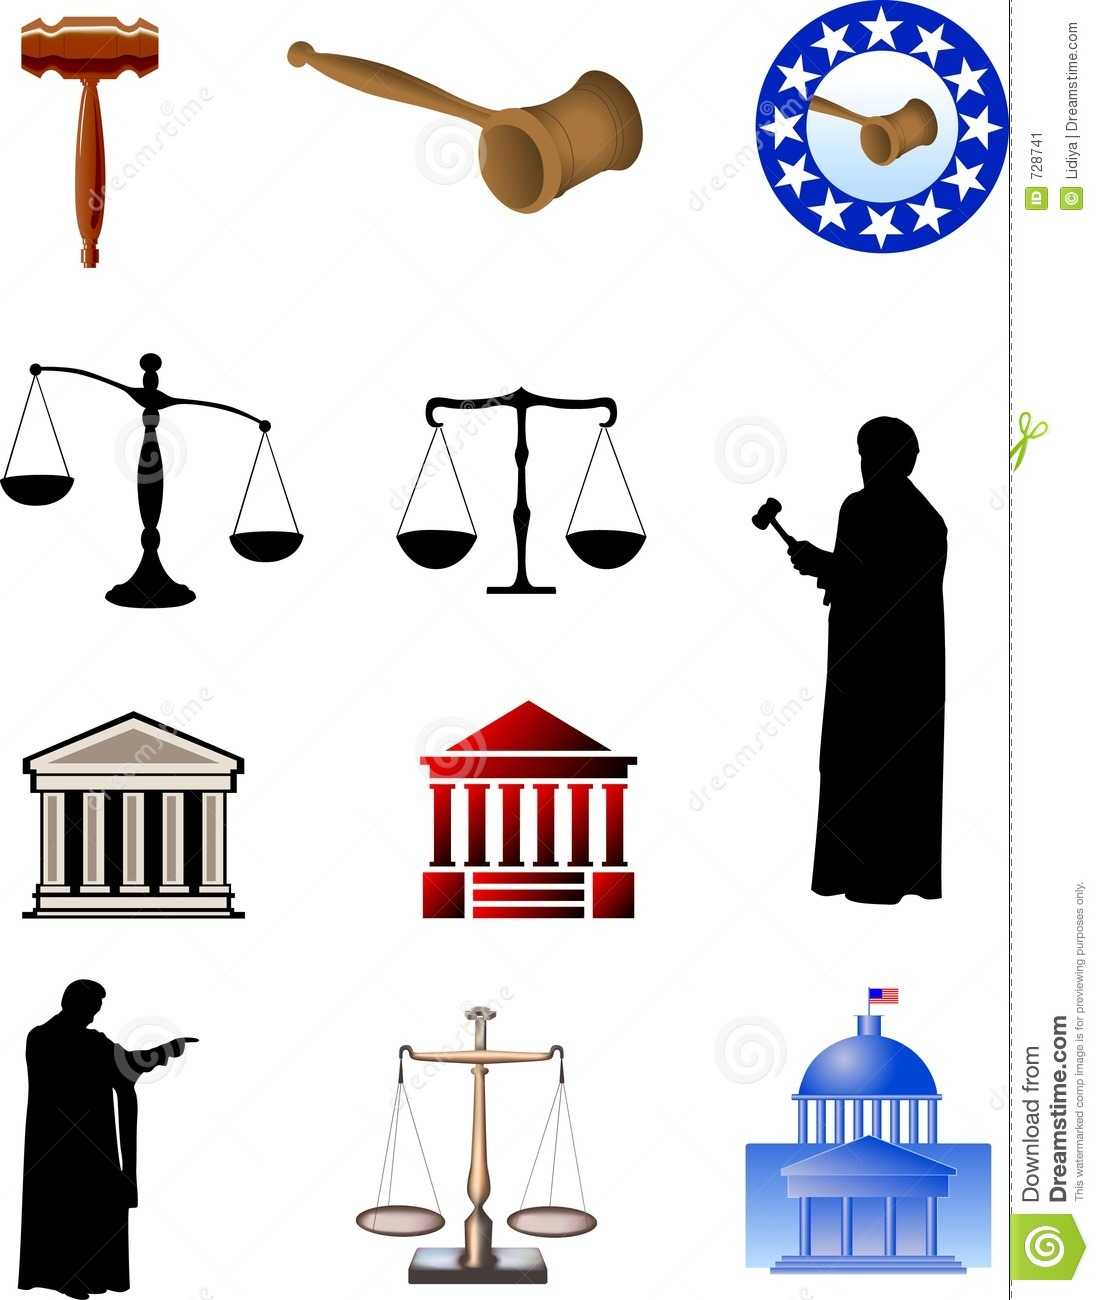 Symbols of justice. Digital illustration.